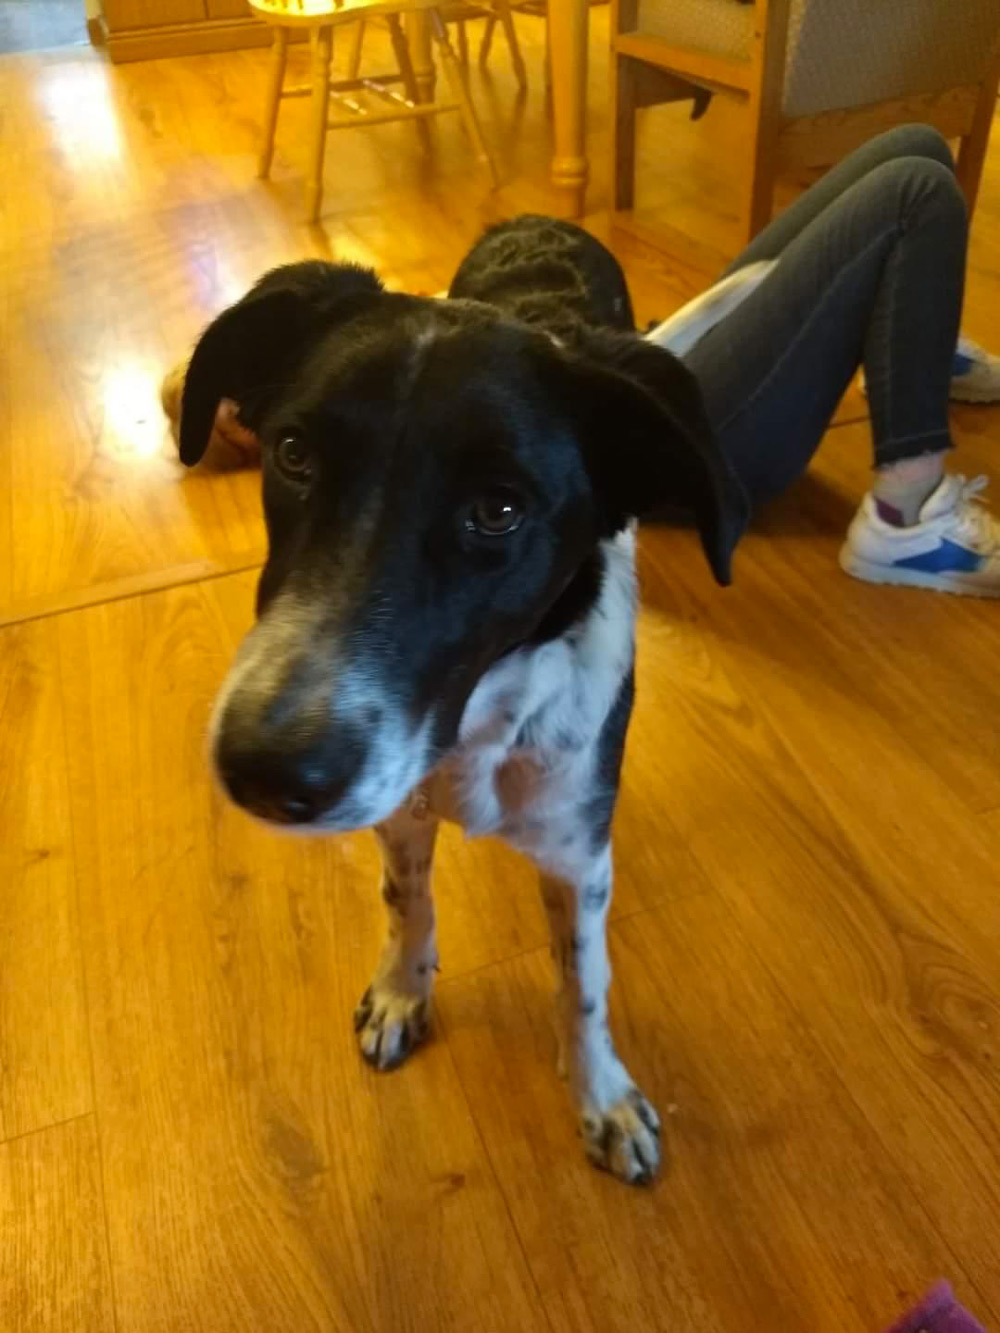 Meet Pepsi. Pepsi is a spaniel/pointer mix, and her name at the shelter was Hiker; she almost hitchhiked a ride home with another lady, before Tracy, Elise, and Joanna C. and their family adopted her!